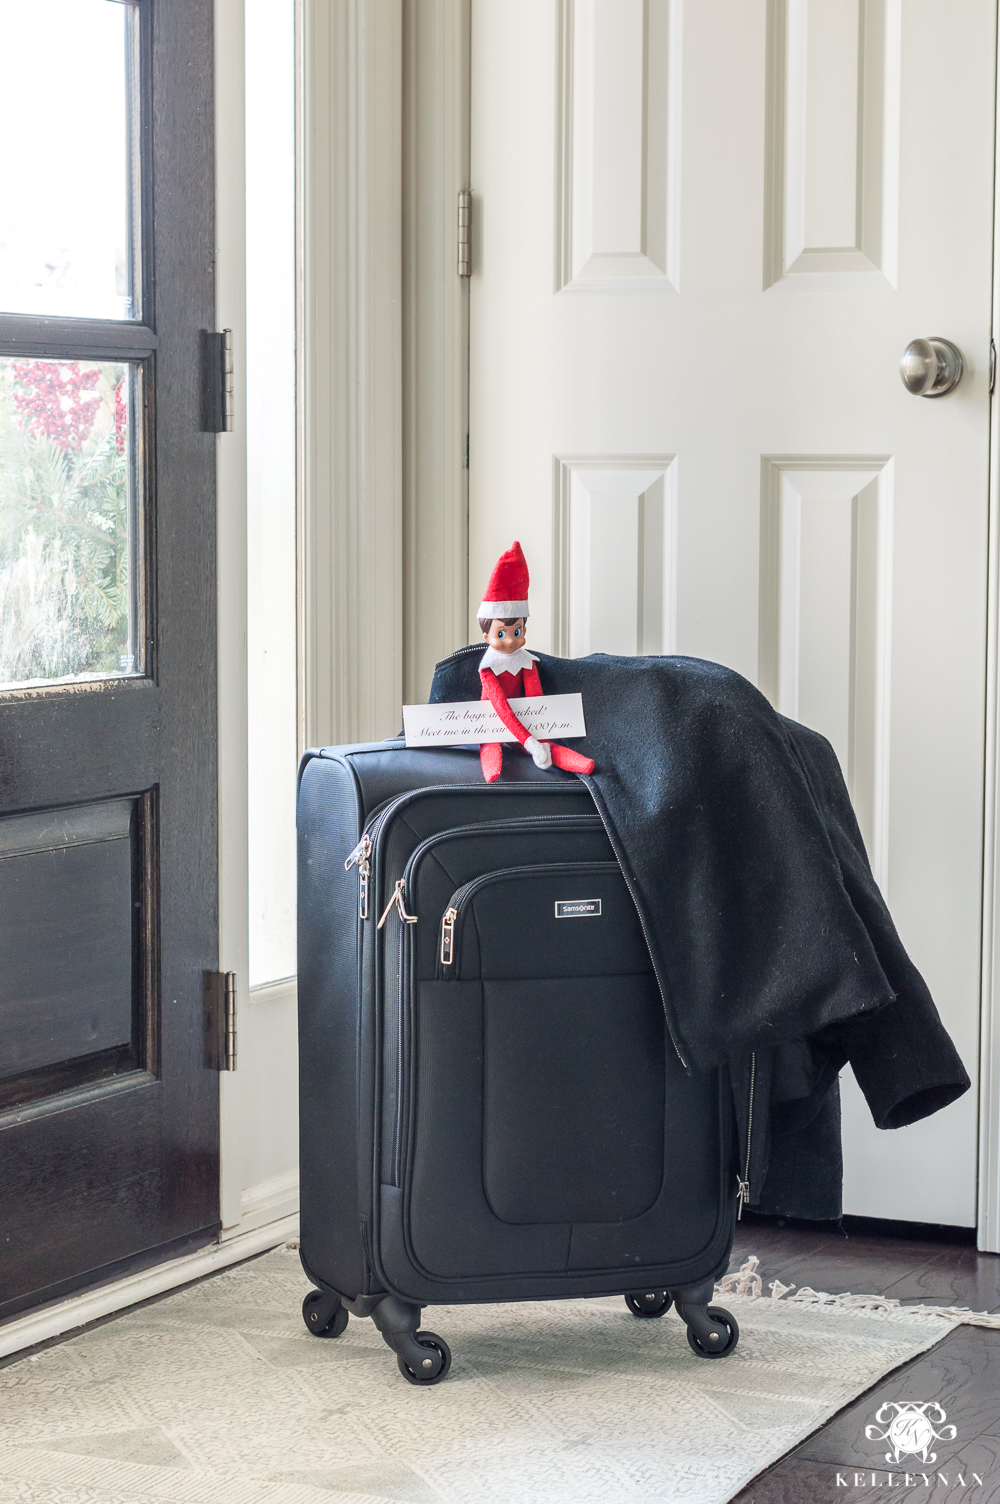 Original christmas ideas for your boyfriend or husband with elf on the shelf